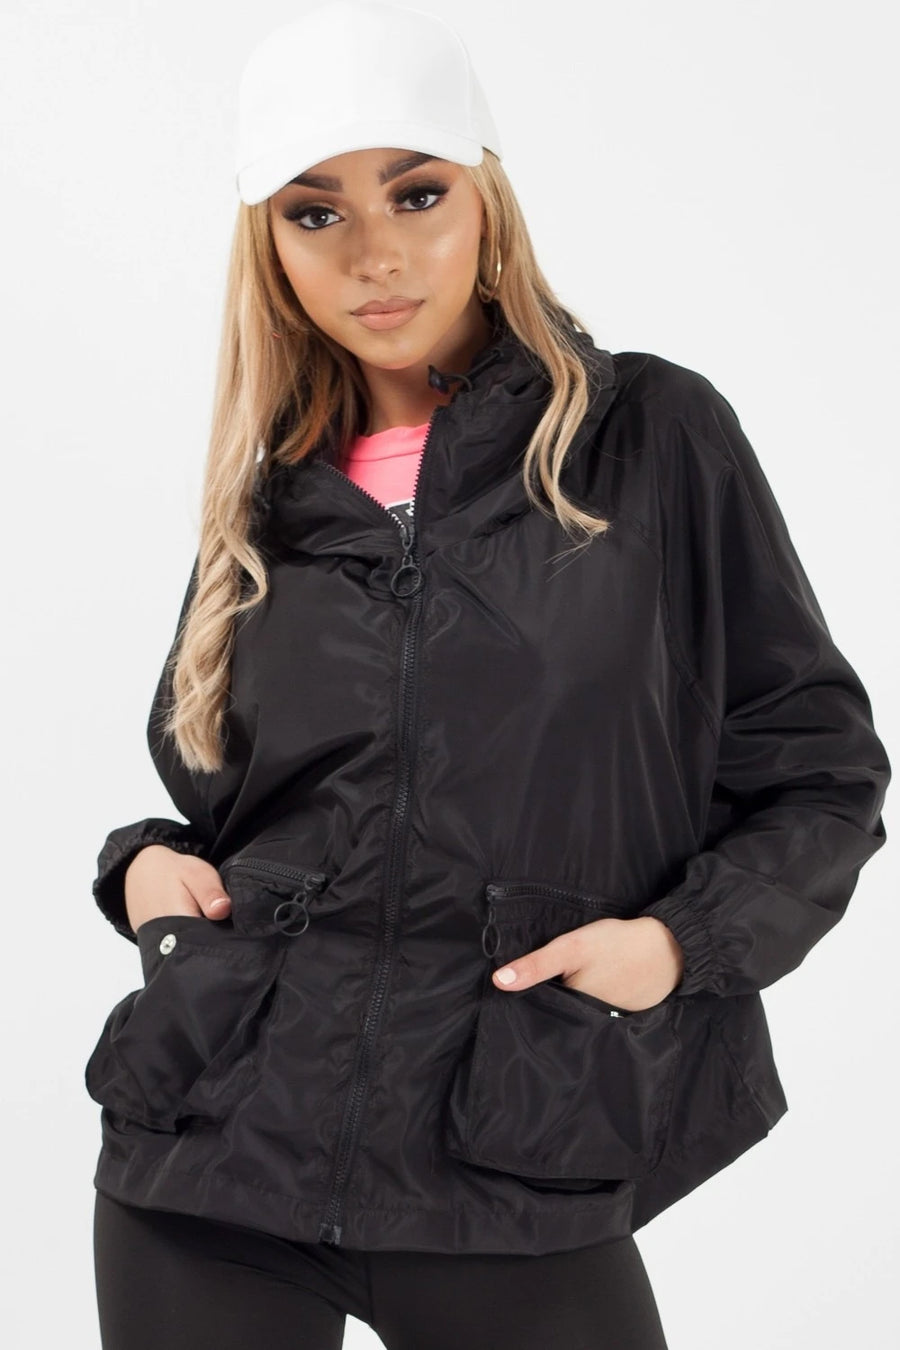 Black Hooded Rain Parka Festival Jacket - Maggie